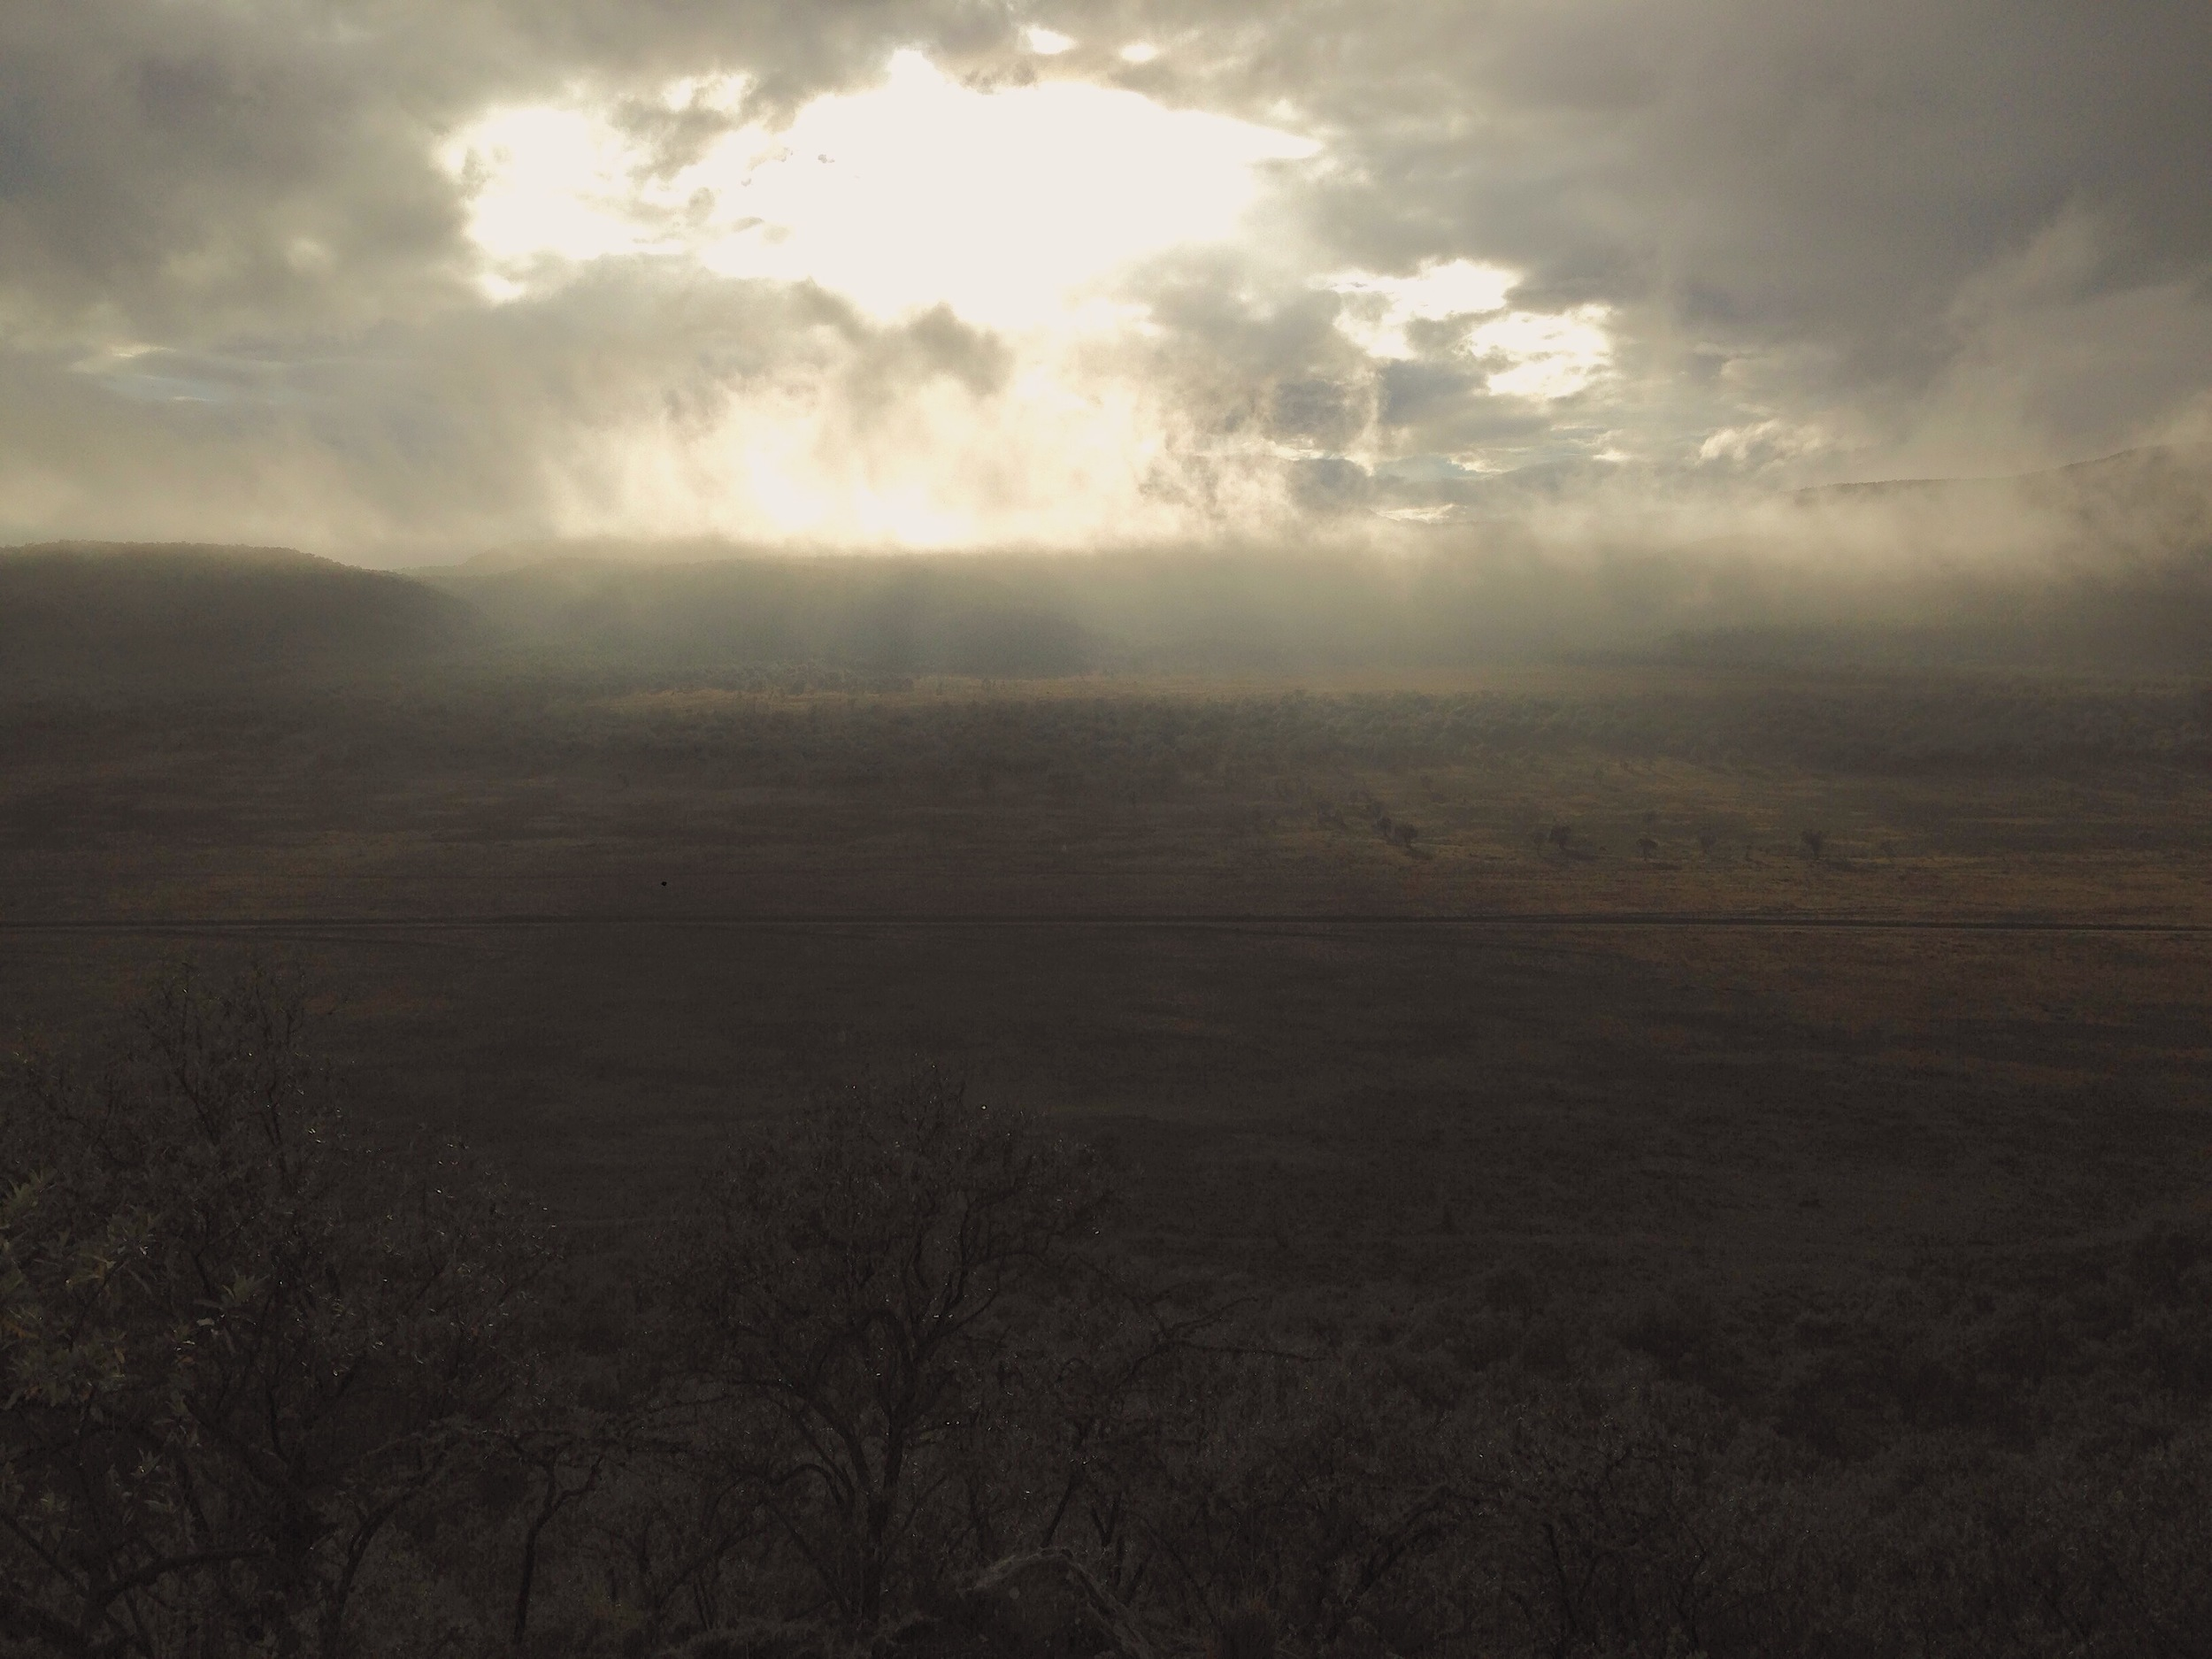 The early morning sun breaks through the clouds over the plains of Hell's Gate National Park